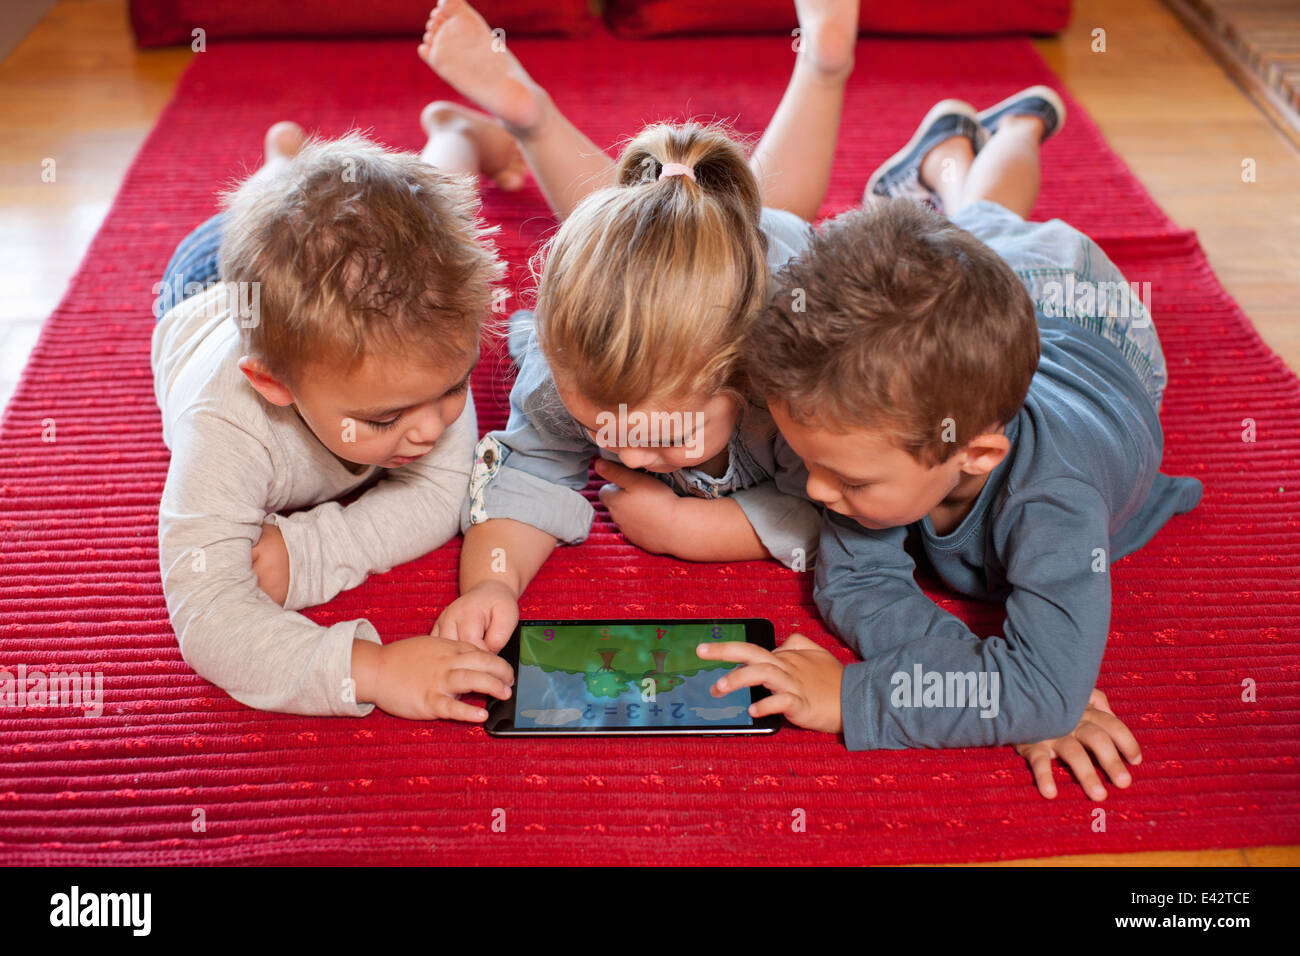 Boys and a girl using digital tablet at nursery school Stock Photo